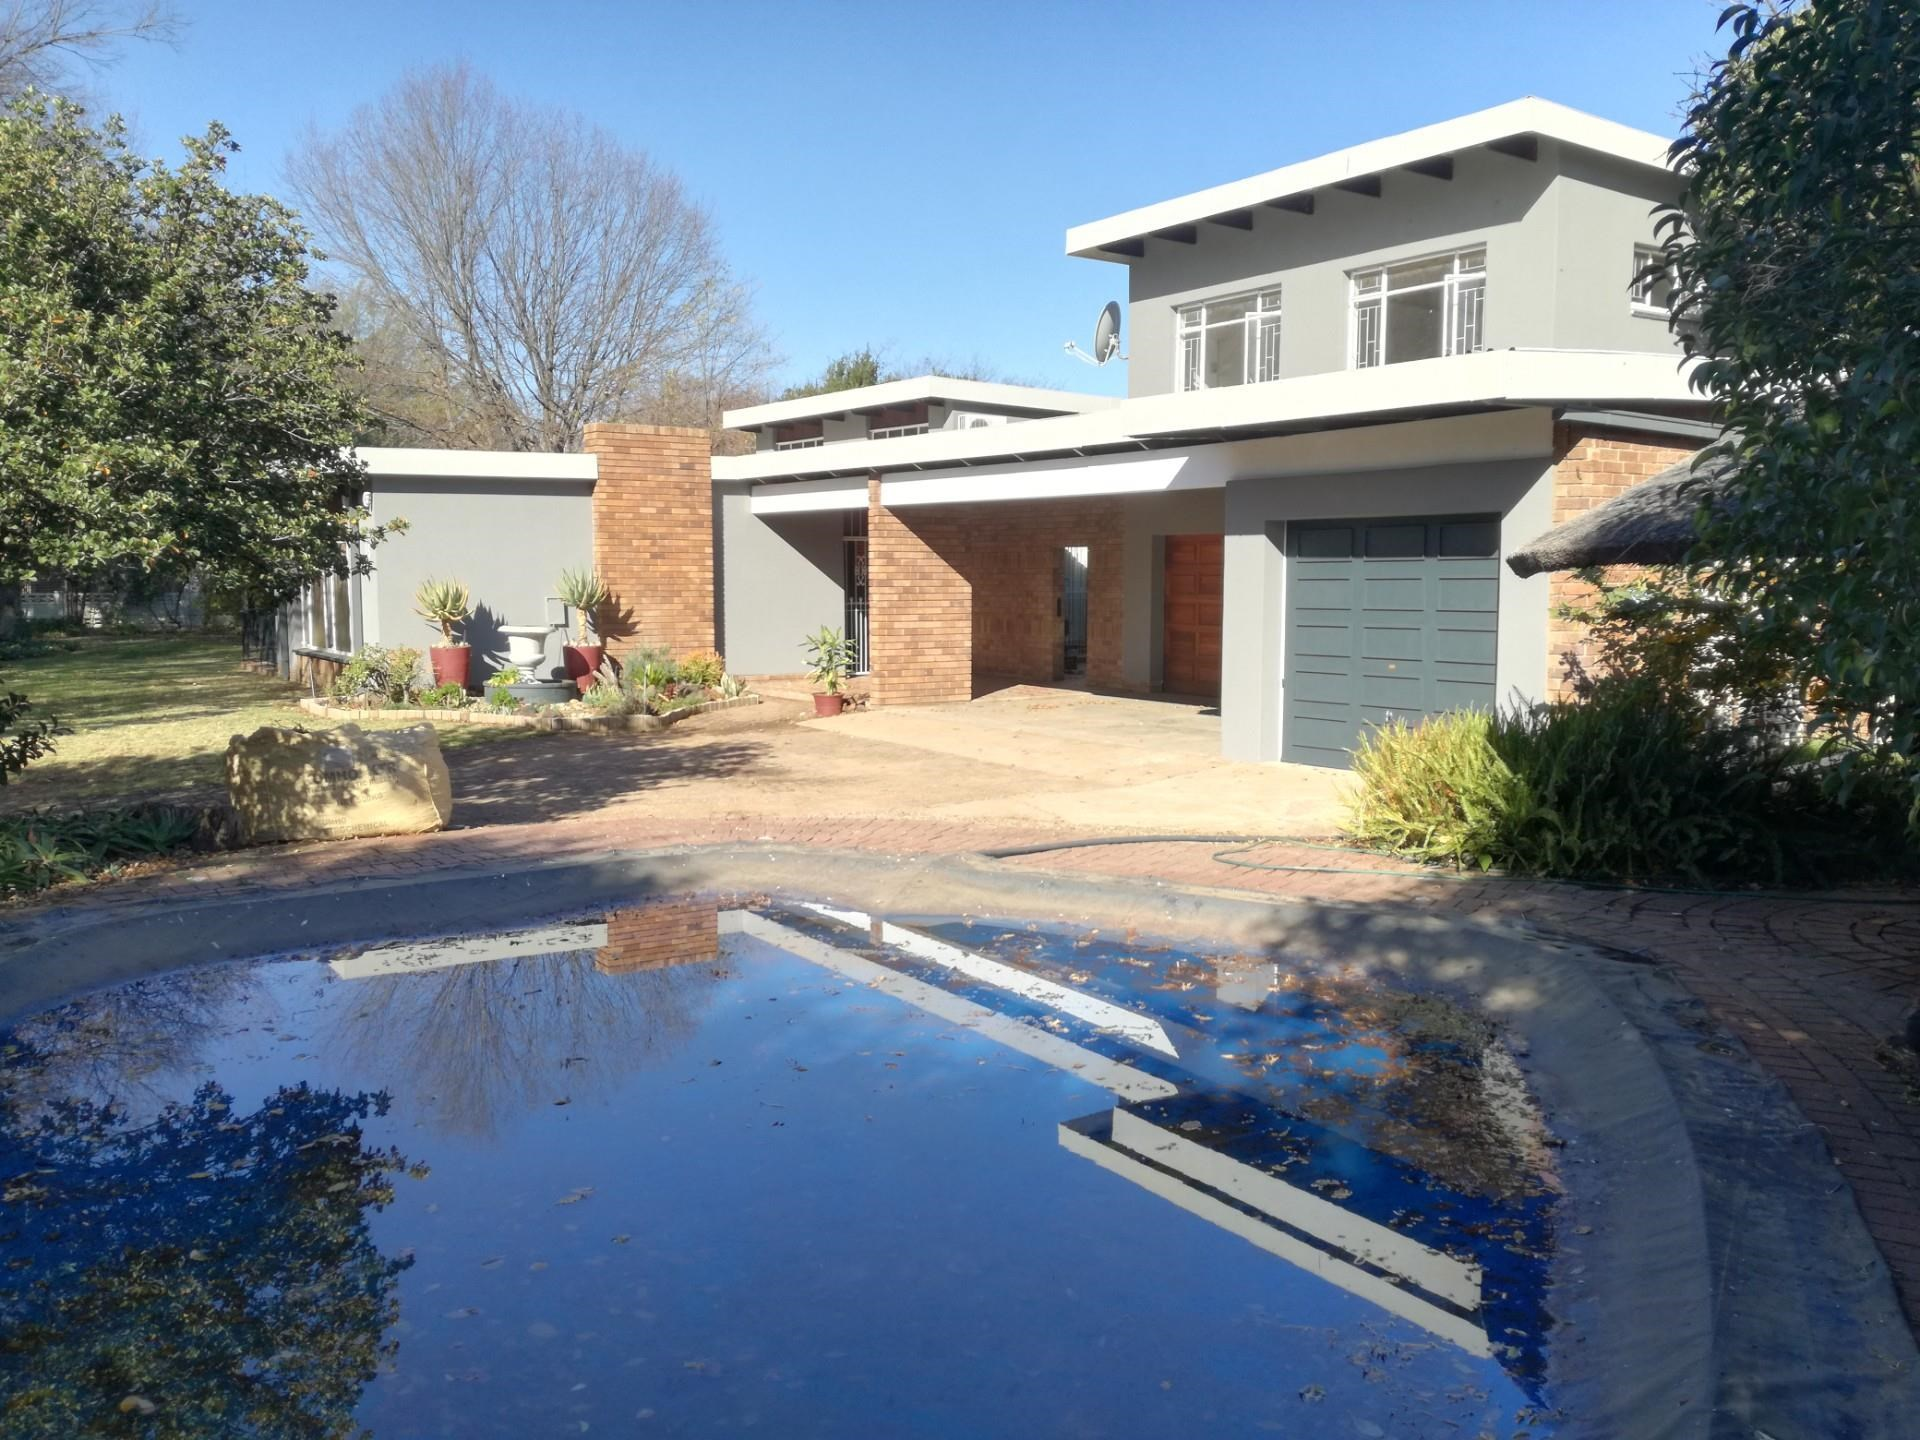 4 Bedroom House to Rent in Sasolburg Central